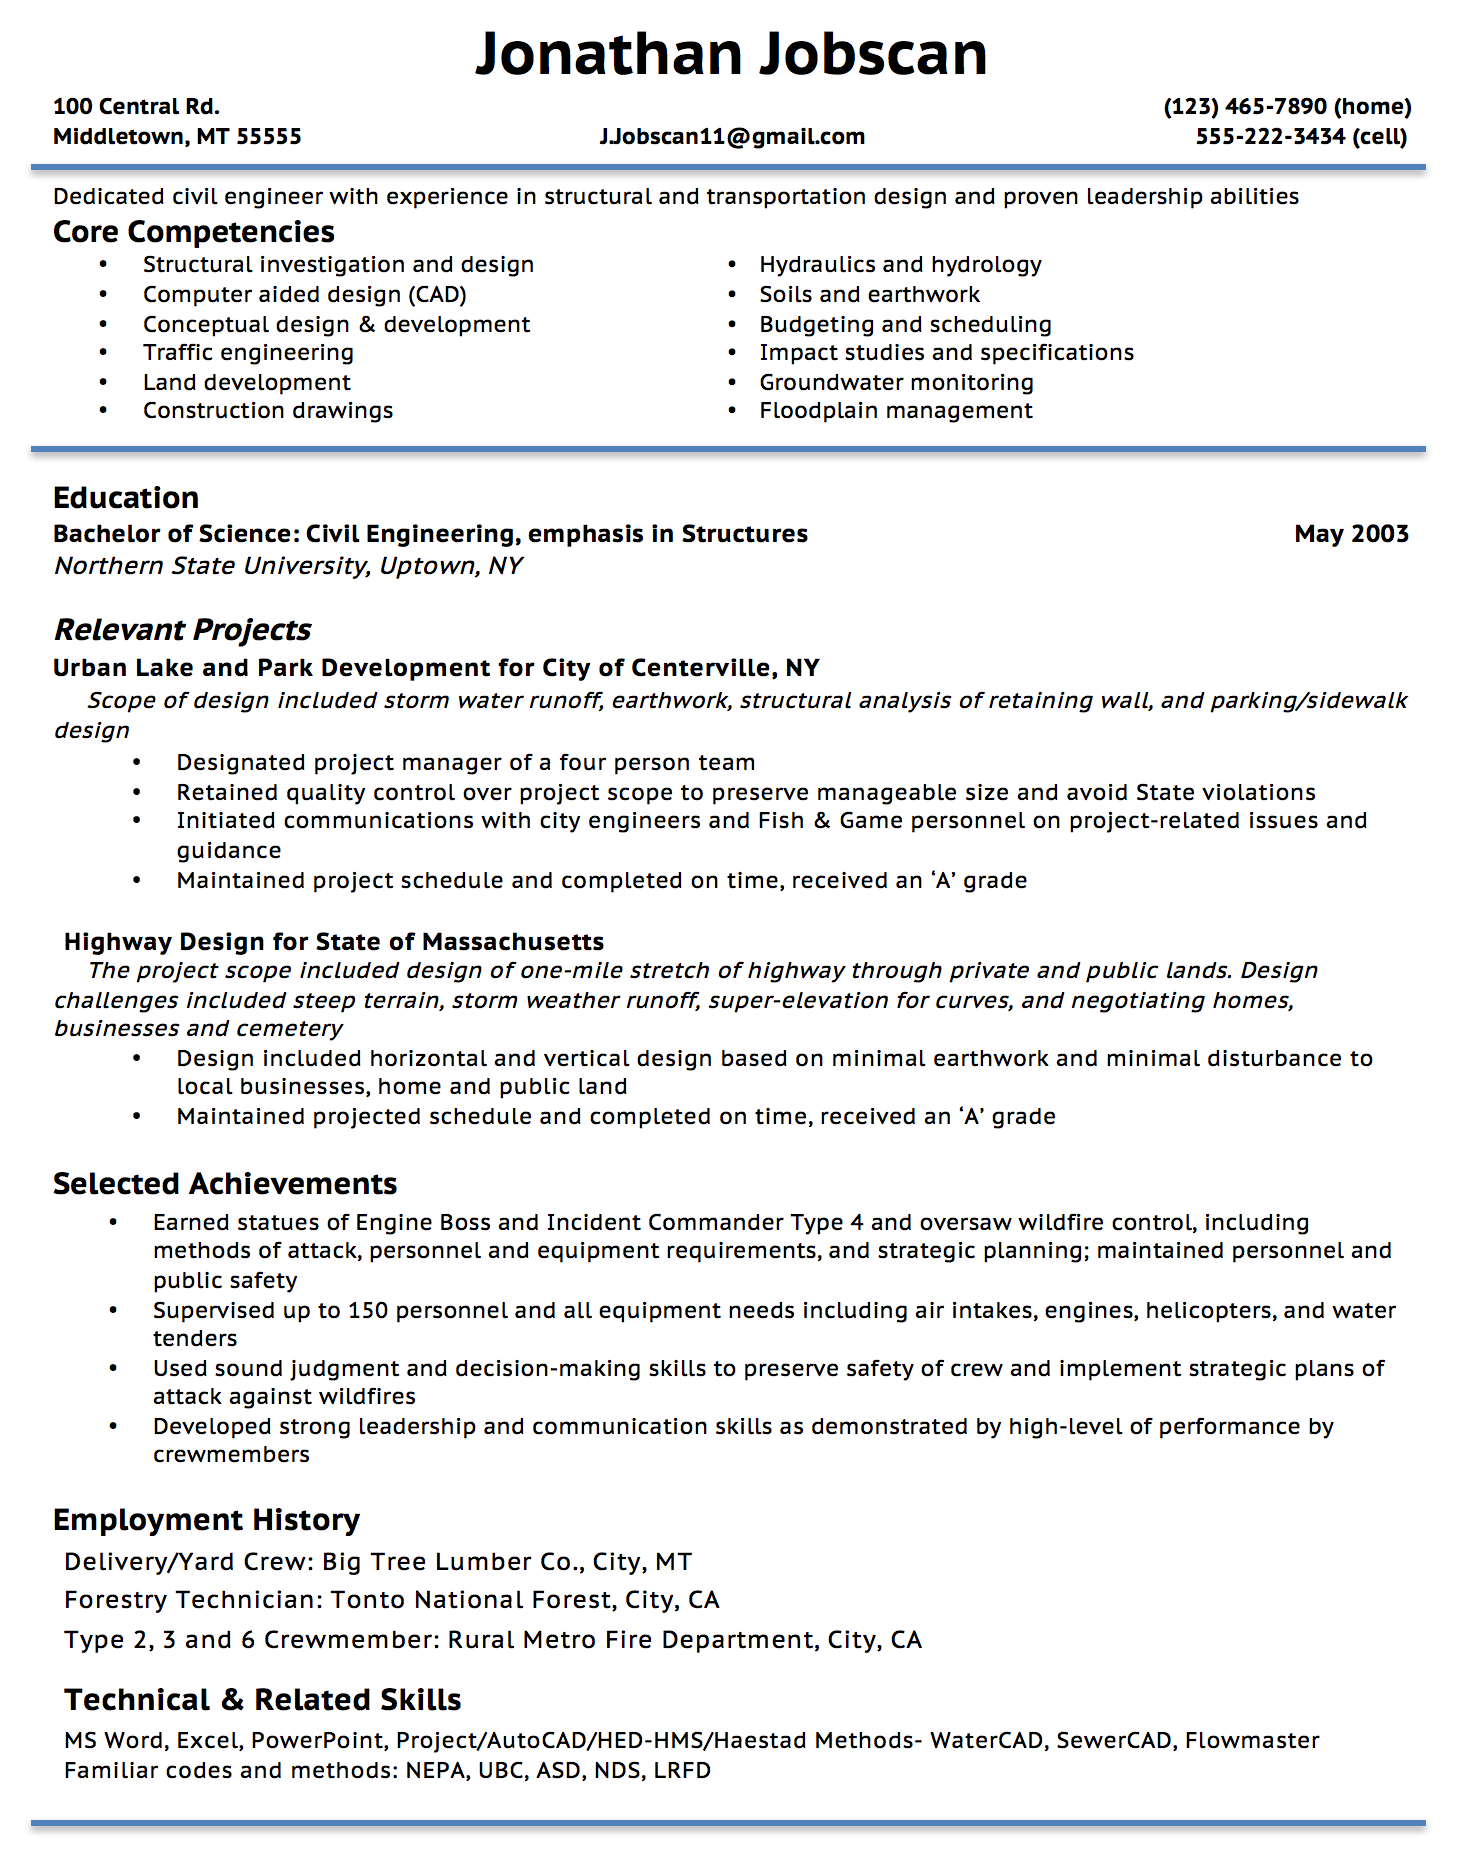 Opposenewapstandardsus  Personable Resume Writing Guide  Jobscan With Extraordinary Example Of A Functional Resume Format With Awesome Qualities For Resume Also Funtional Resume In Addition Direct Care Worker Resume And Dunkin Donuts Resume As Well As What To Say In A Resume Additionally Resume Engineering From Jobscanco With Opposenewapstandardsus  Extraordinary Resume Writing Guide  Jobscan With Awesome Example Of A Functional Resume Format And Personable Qualities For Resume Also Funtional Resume In Addition Direct Care Worker Resume From Jobscanco